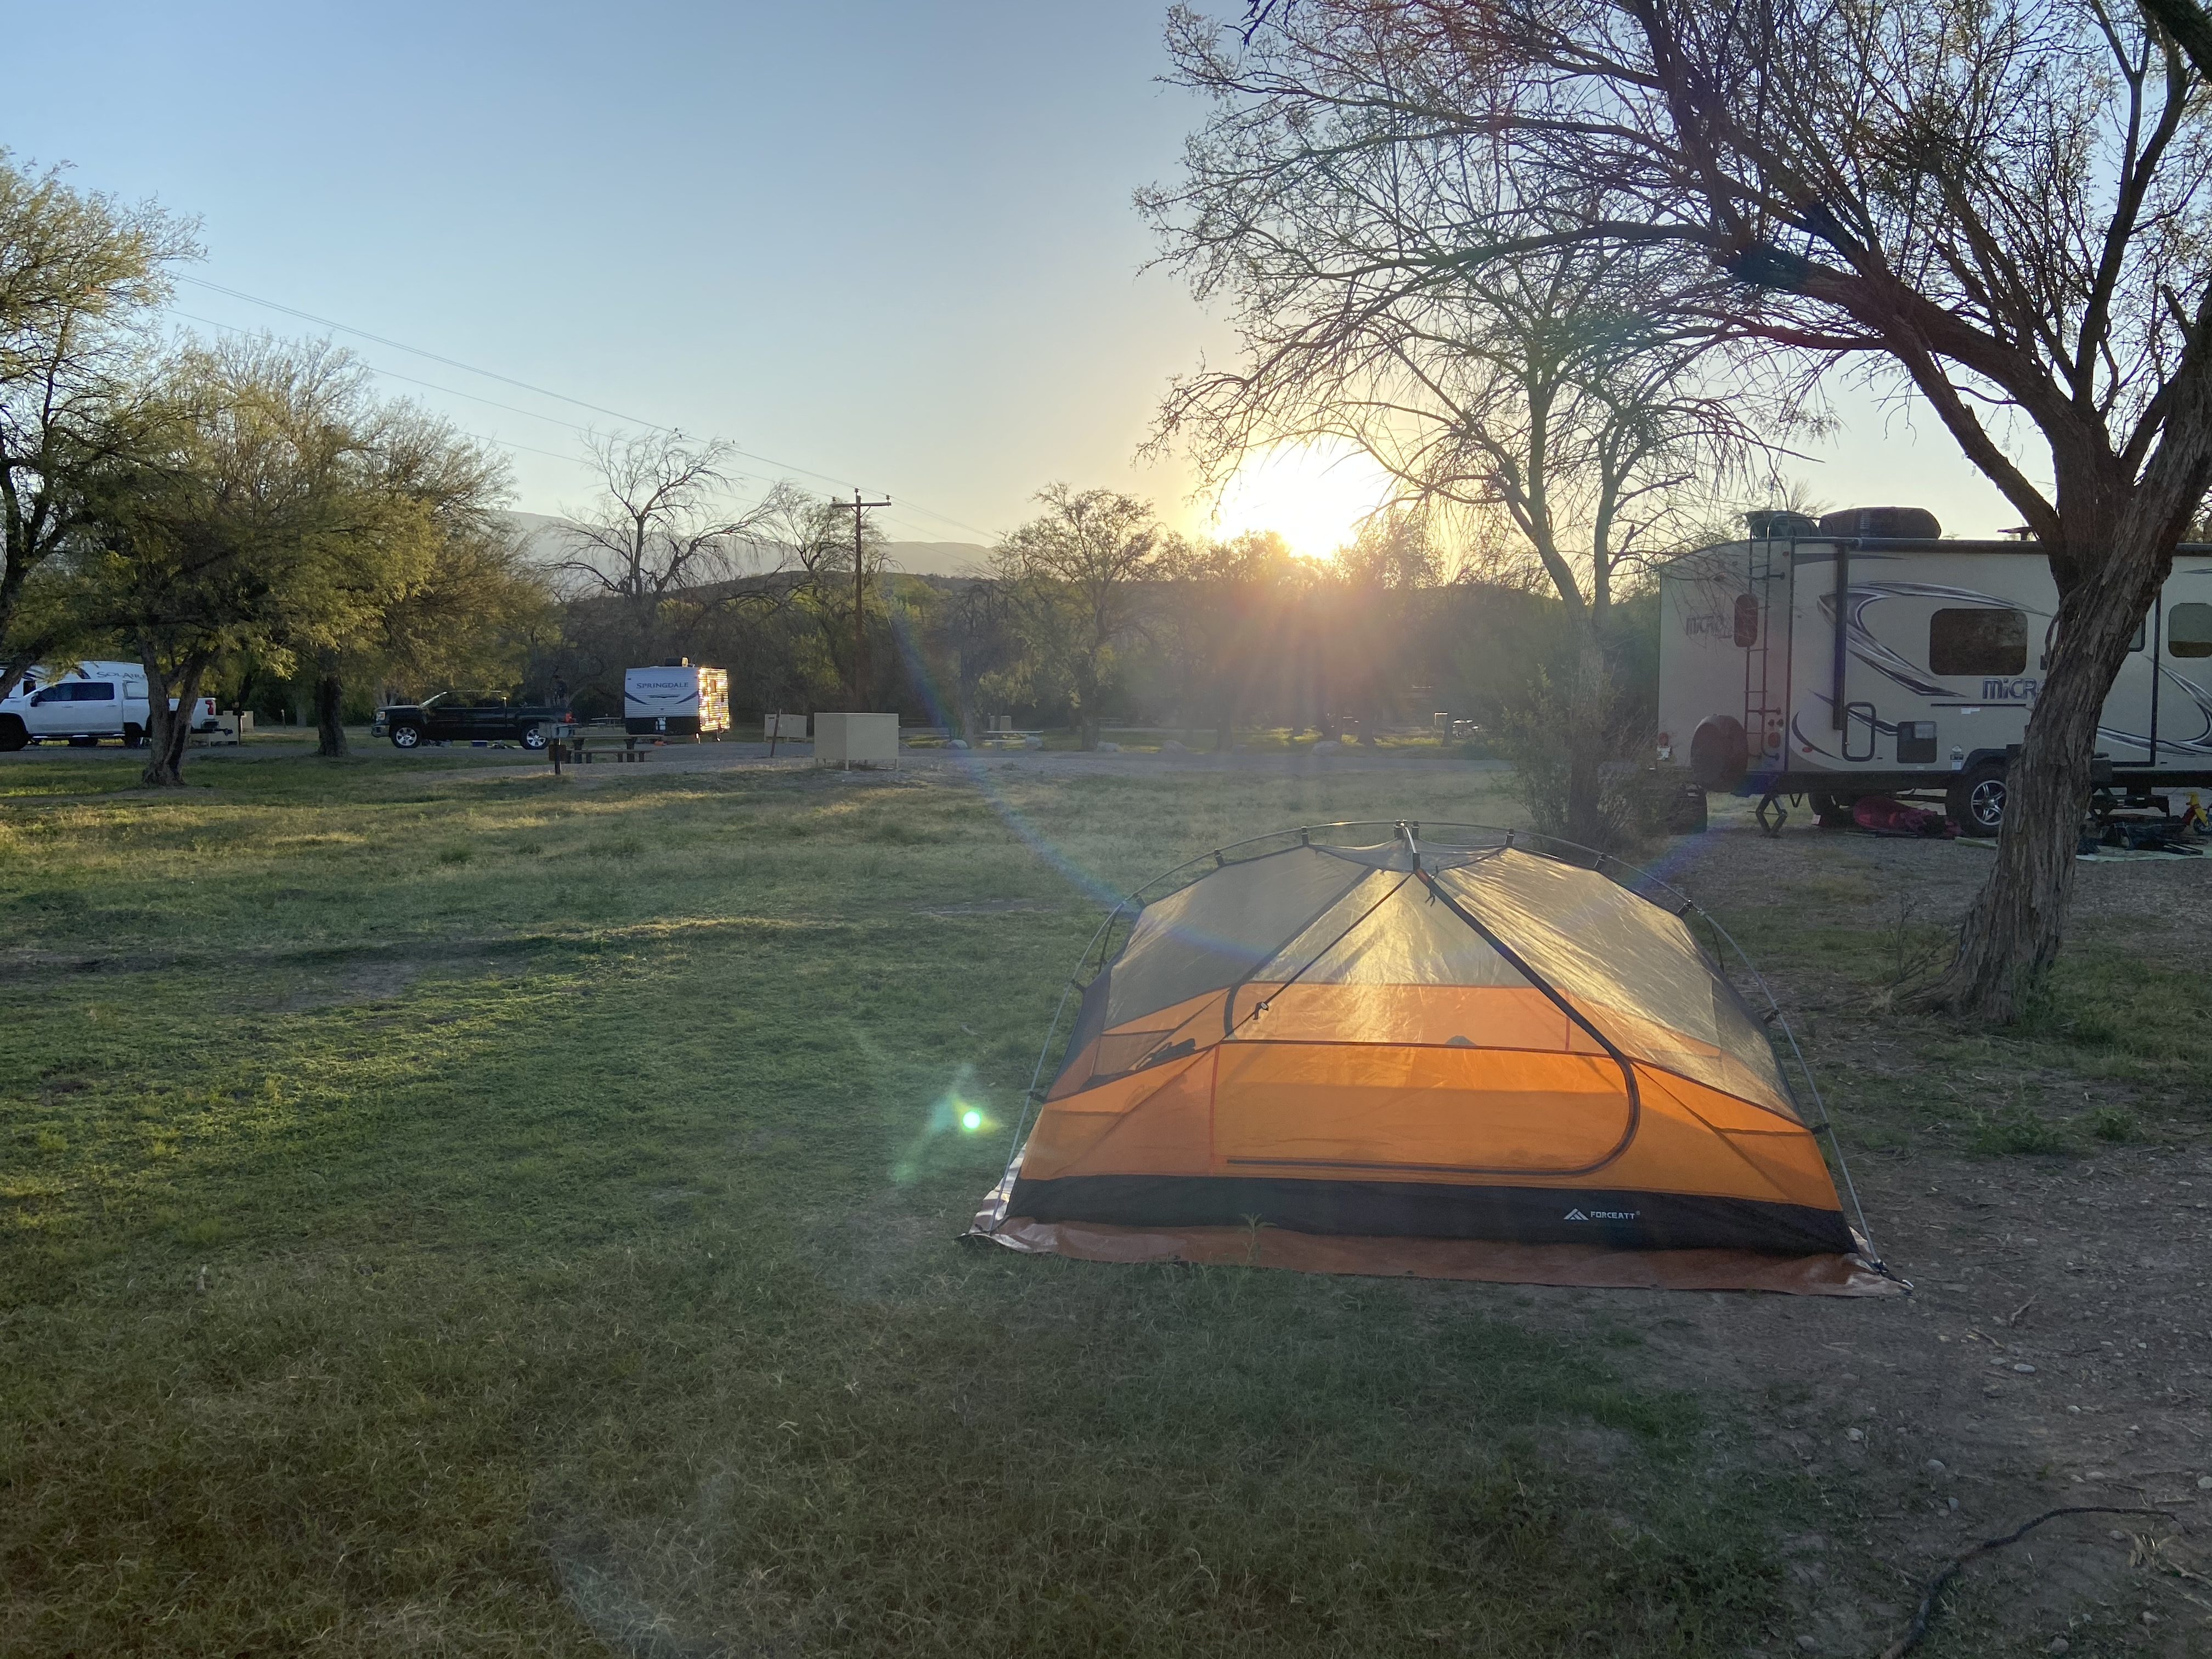 The sun rises on our tent at Rio Grande Village in Big Bend National Park.